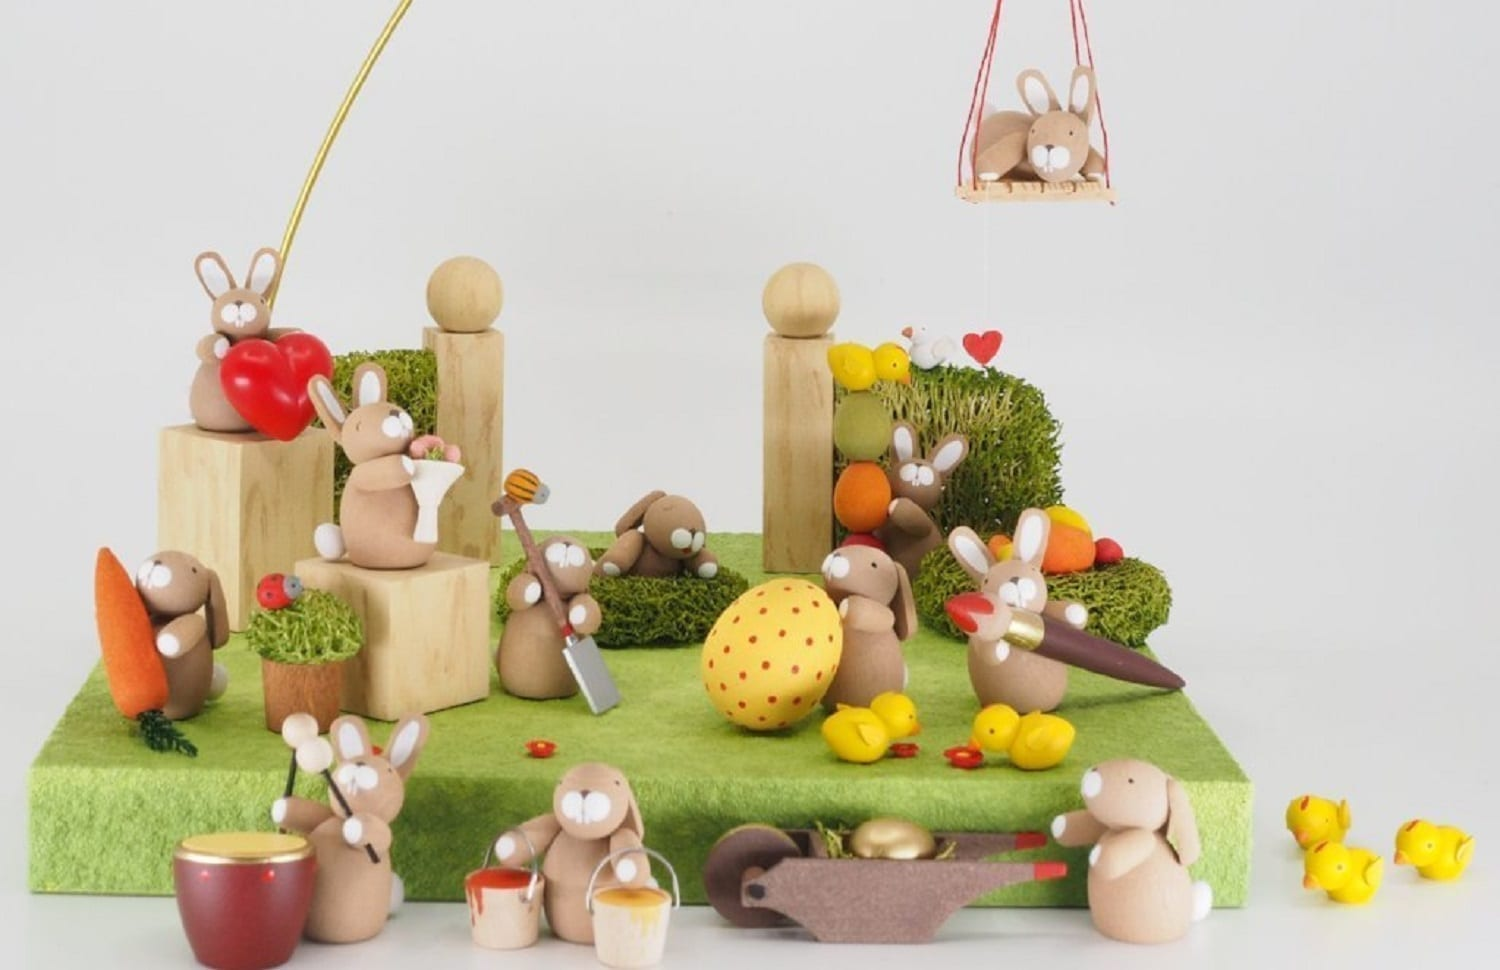 German Wooden Easter Decorations – The German Christmas Shop at Easter